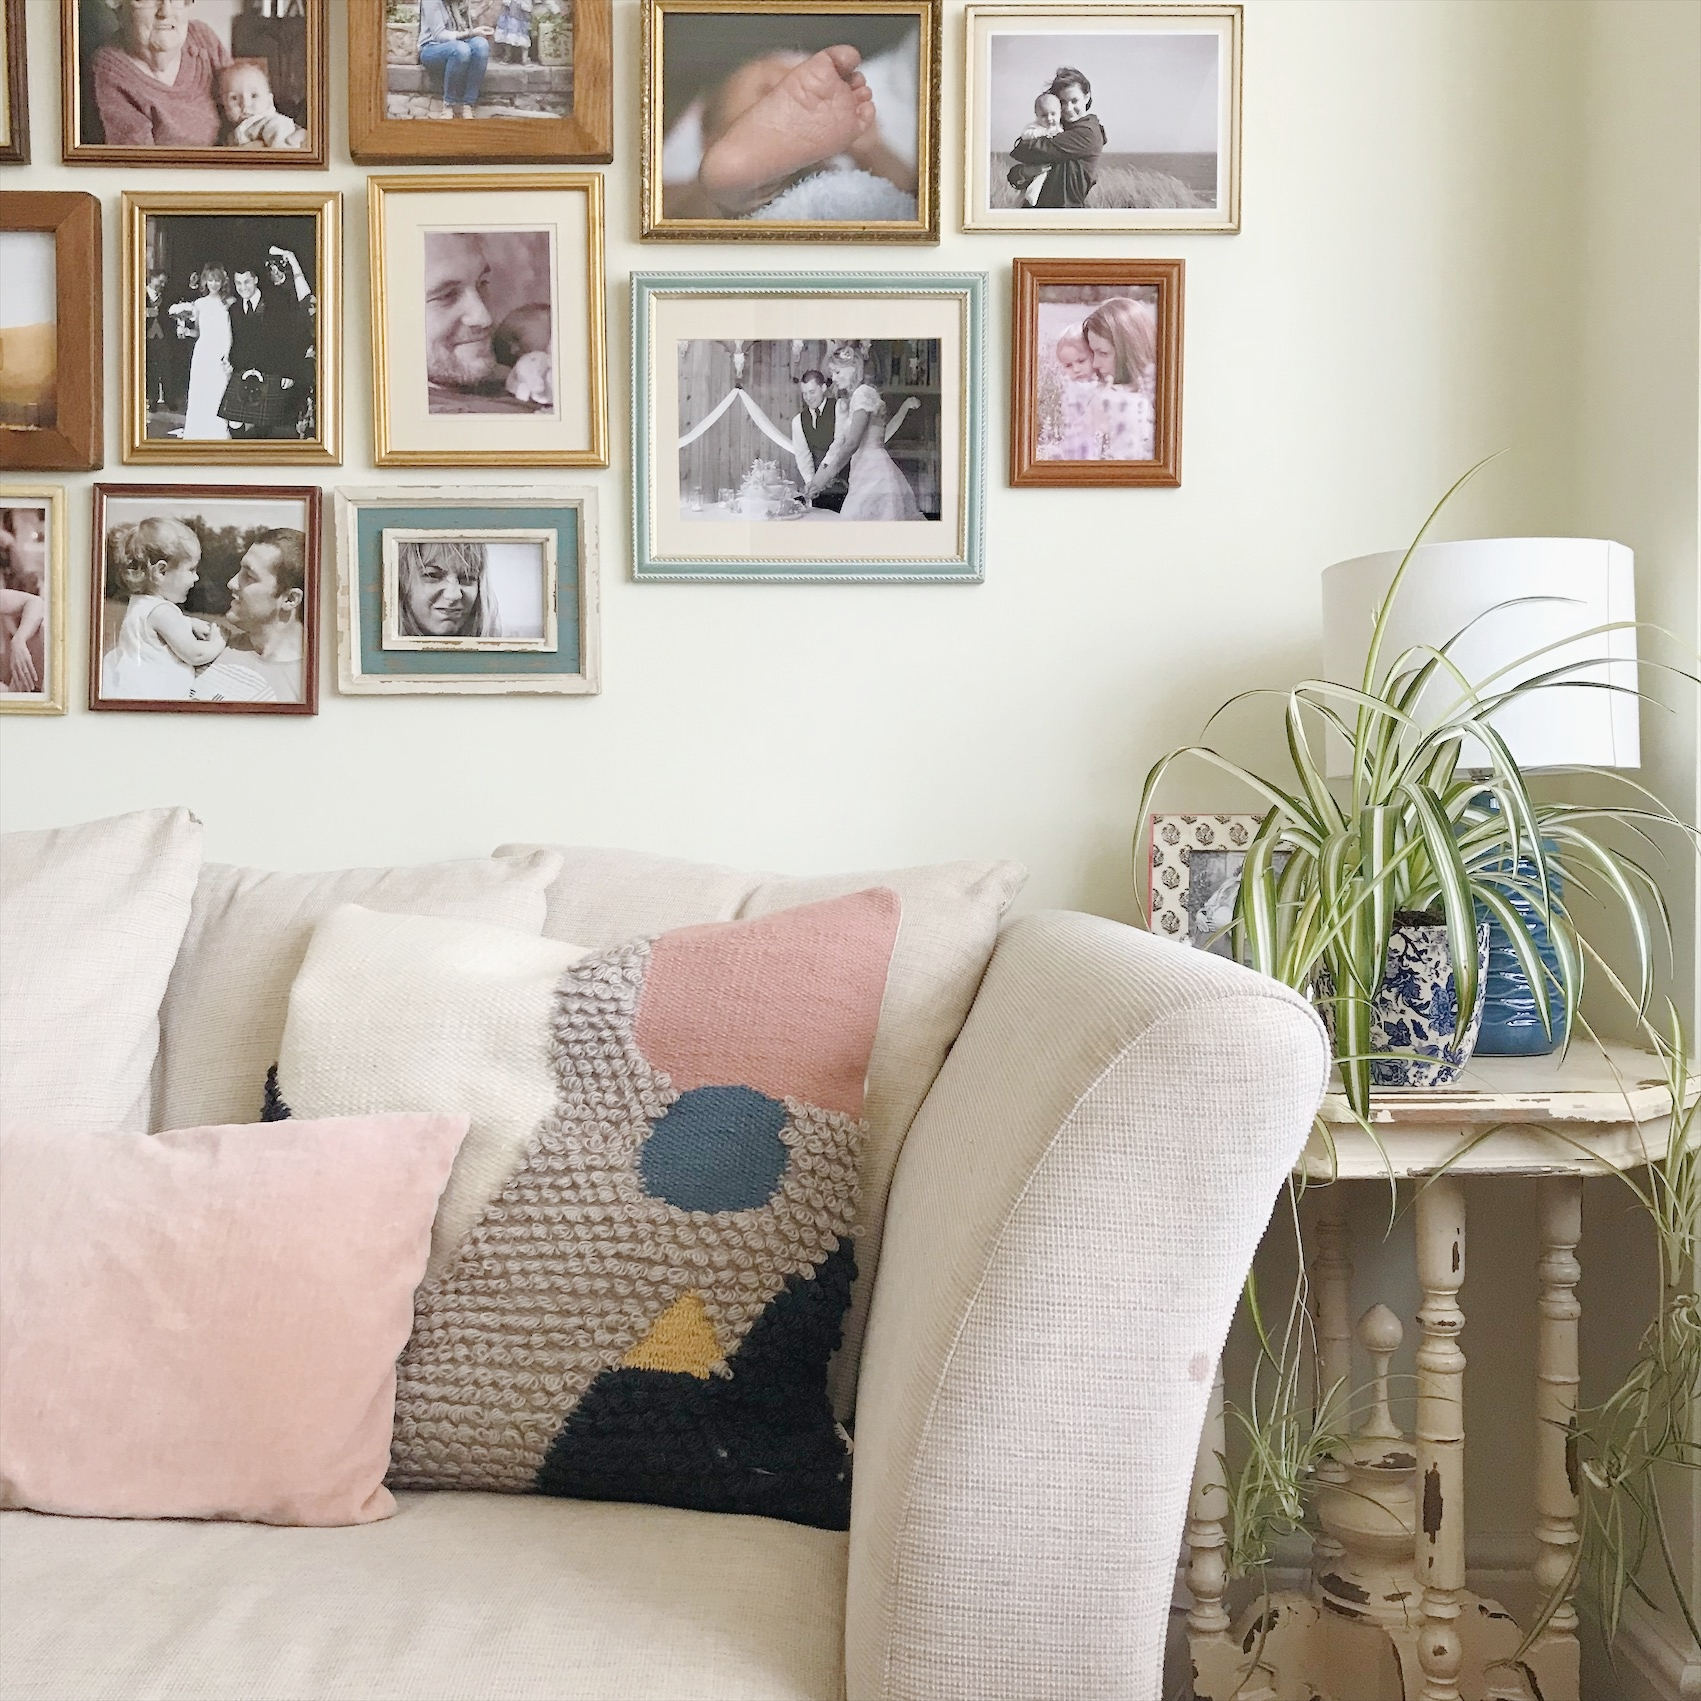 Gallery wall in muted tones and with eclectic charity shop frames